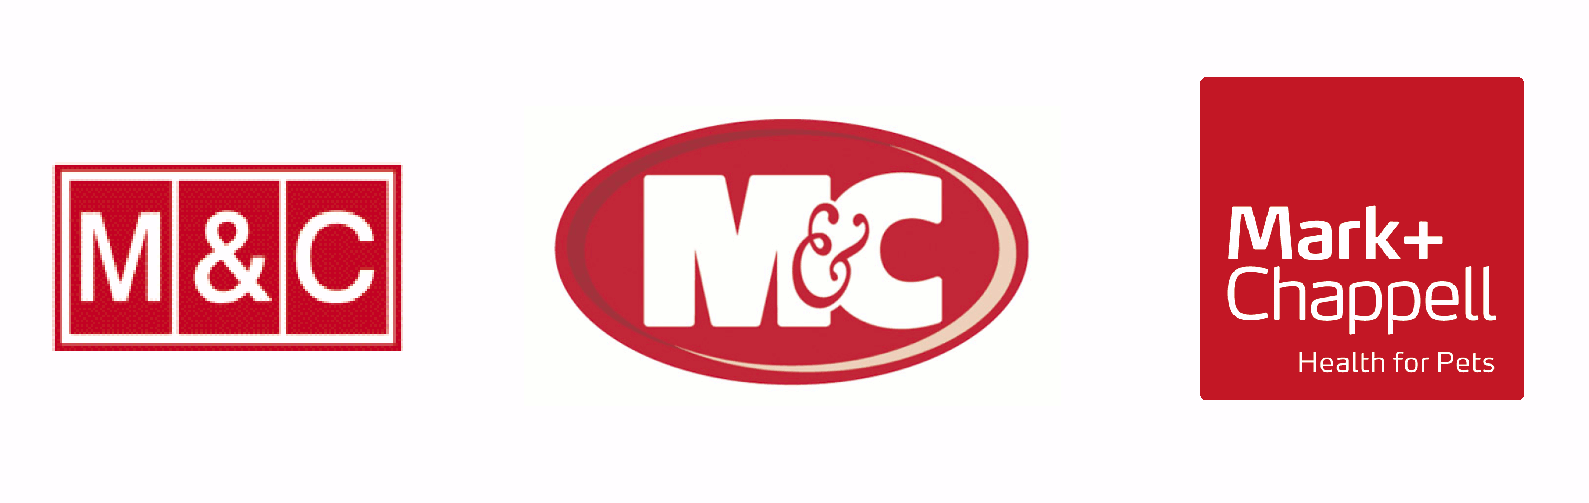 Mark and Chappell Logos